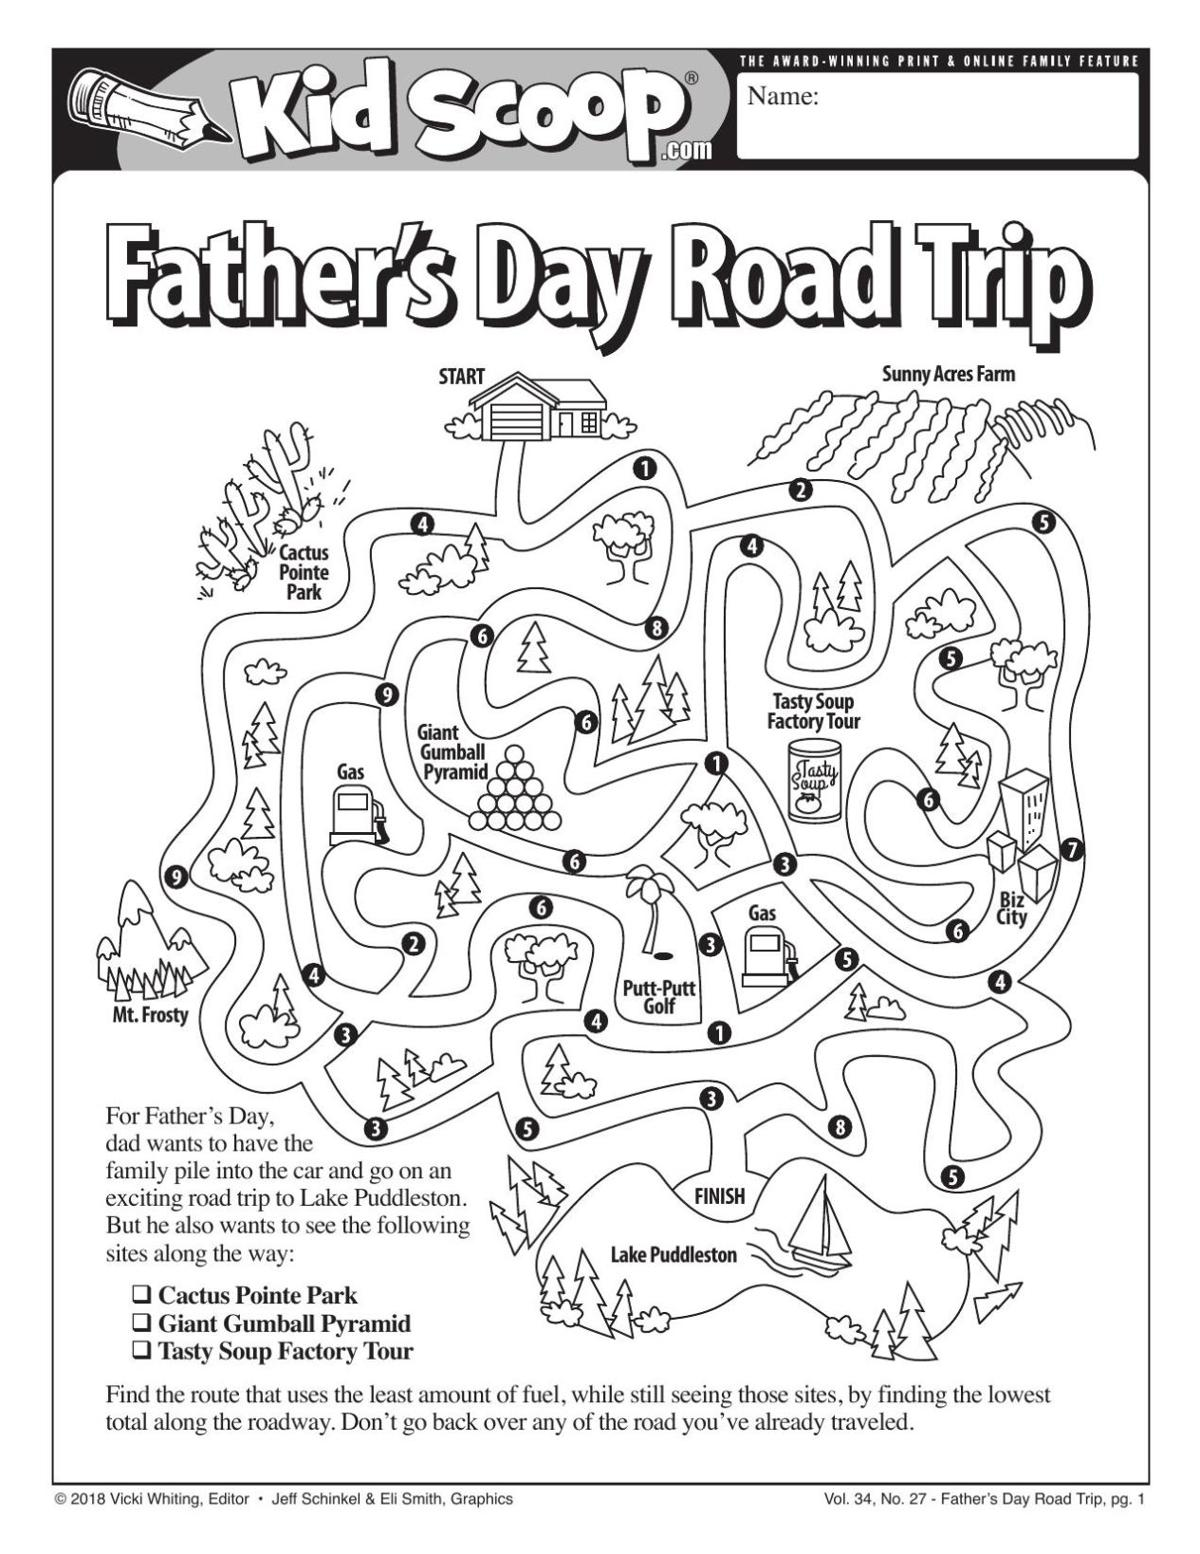 Father's Day Road Trip